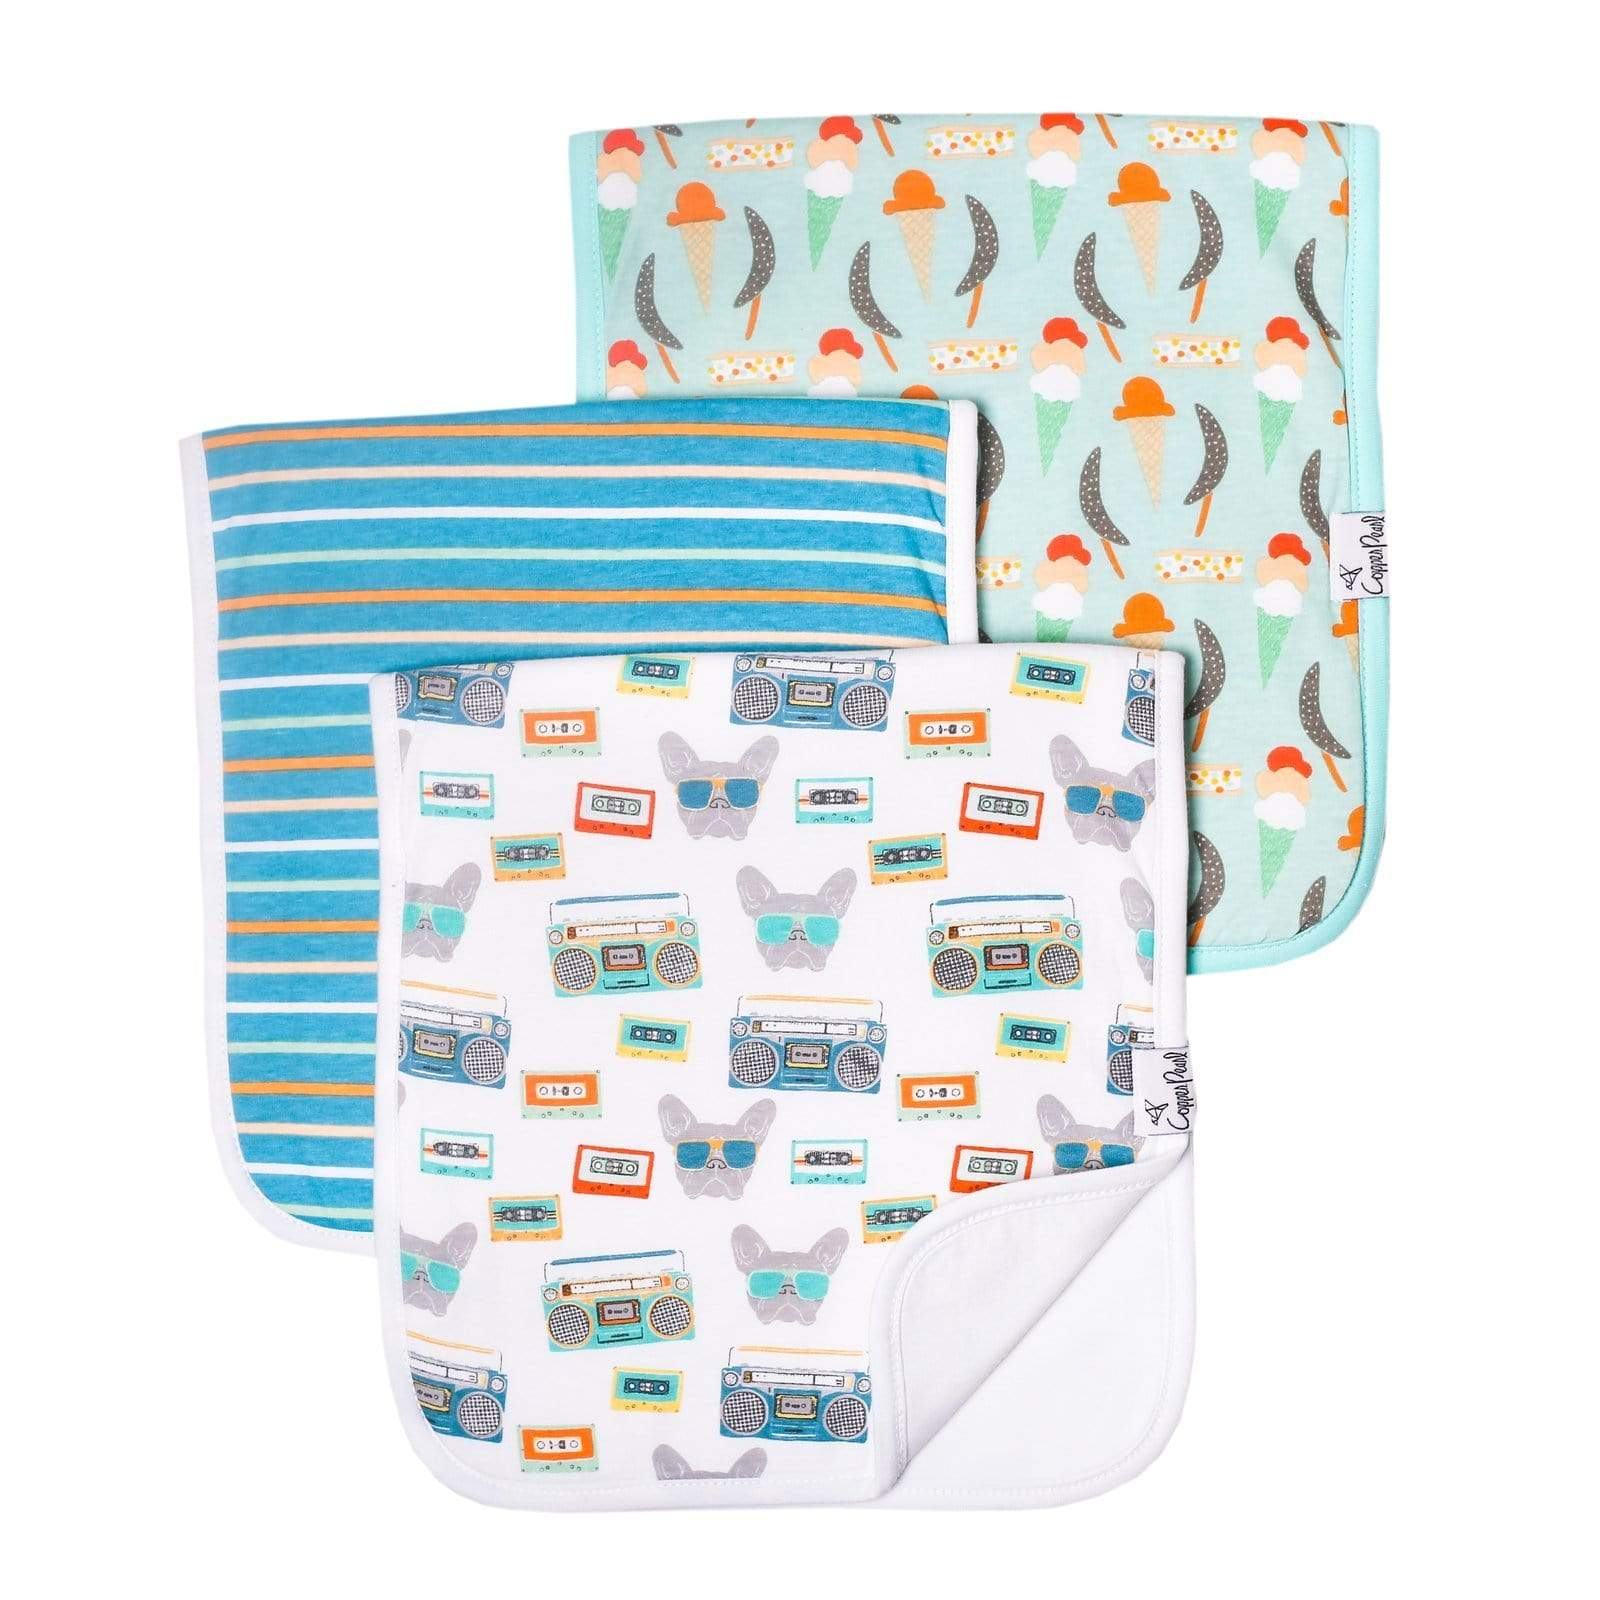 Copper Pearl Burp Cloth Set - 3 pack - Bruno